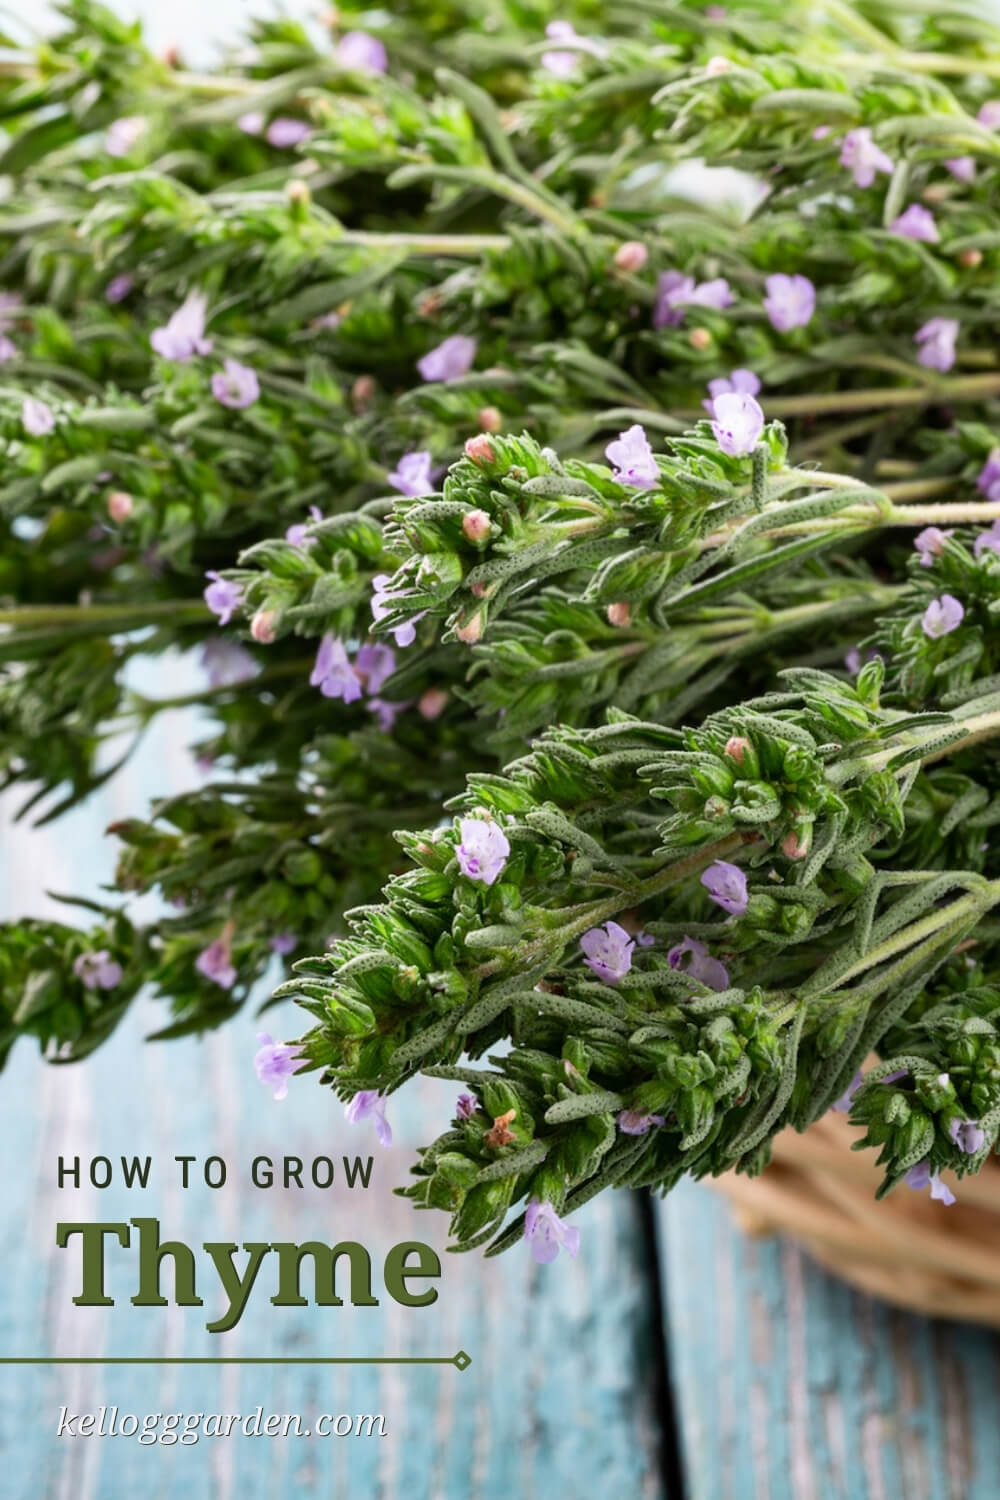 Beautiful Thyme with Flower Buds